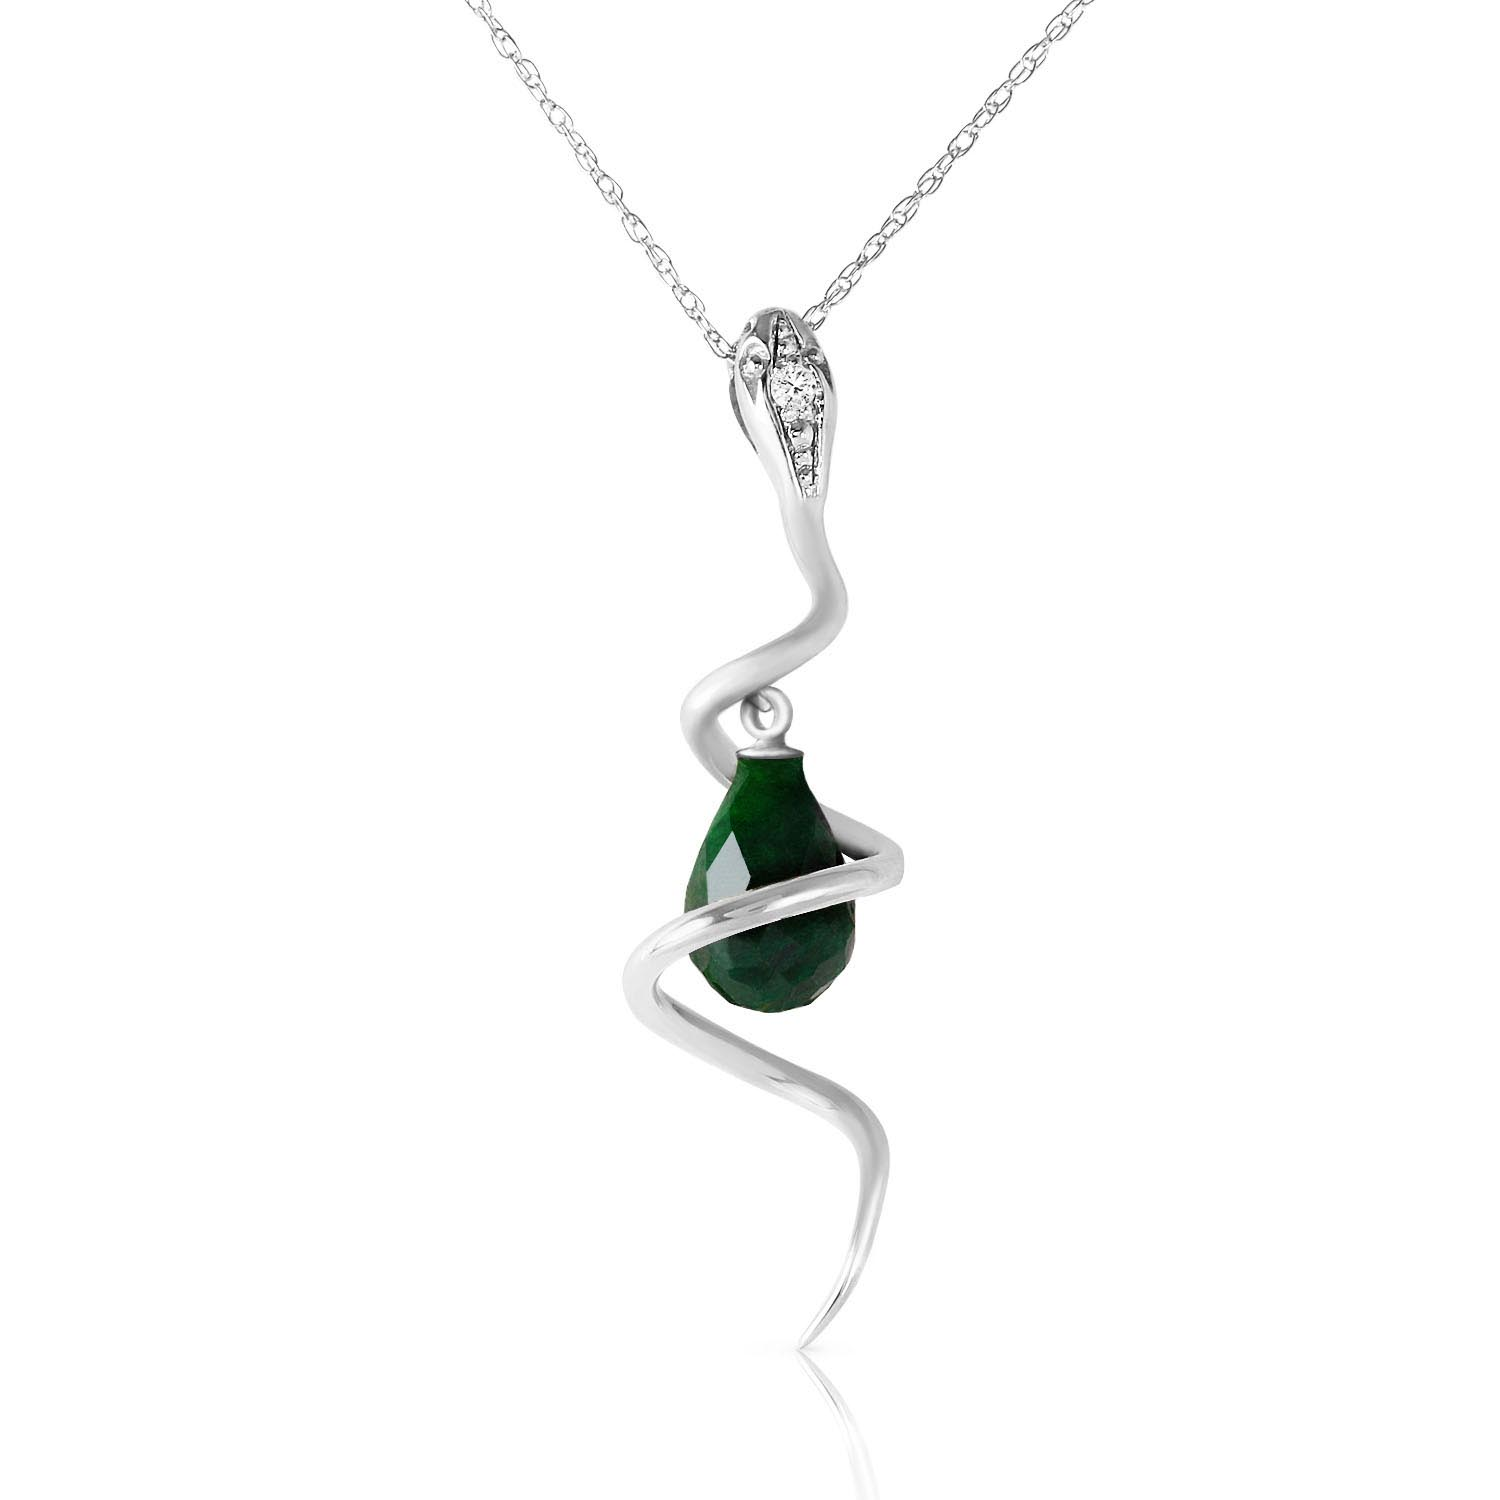 Bargain Emerald and Diamond Serpent Pendant Necklace 3.3ct in 9ct White Gold Stockists